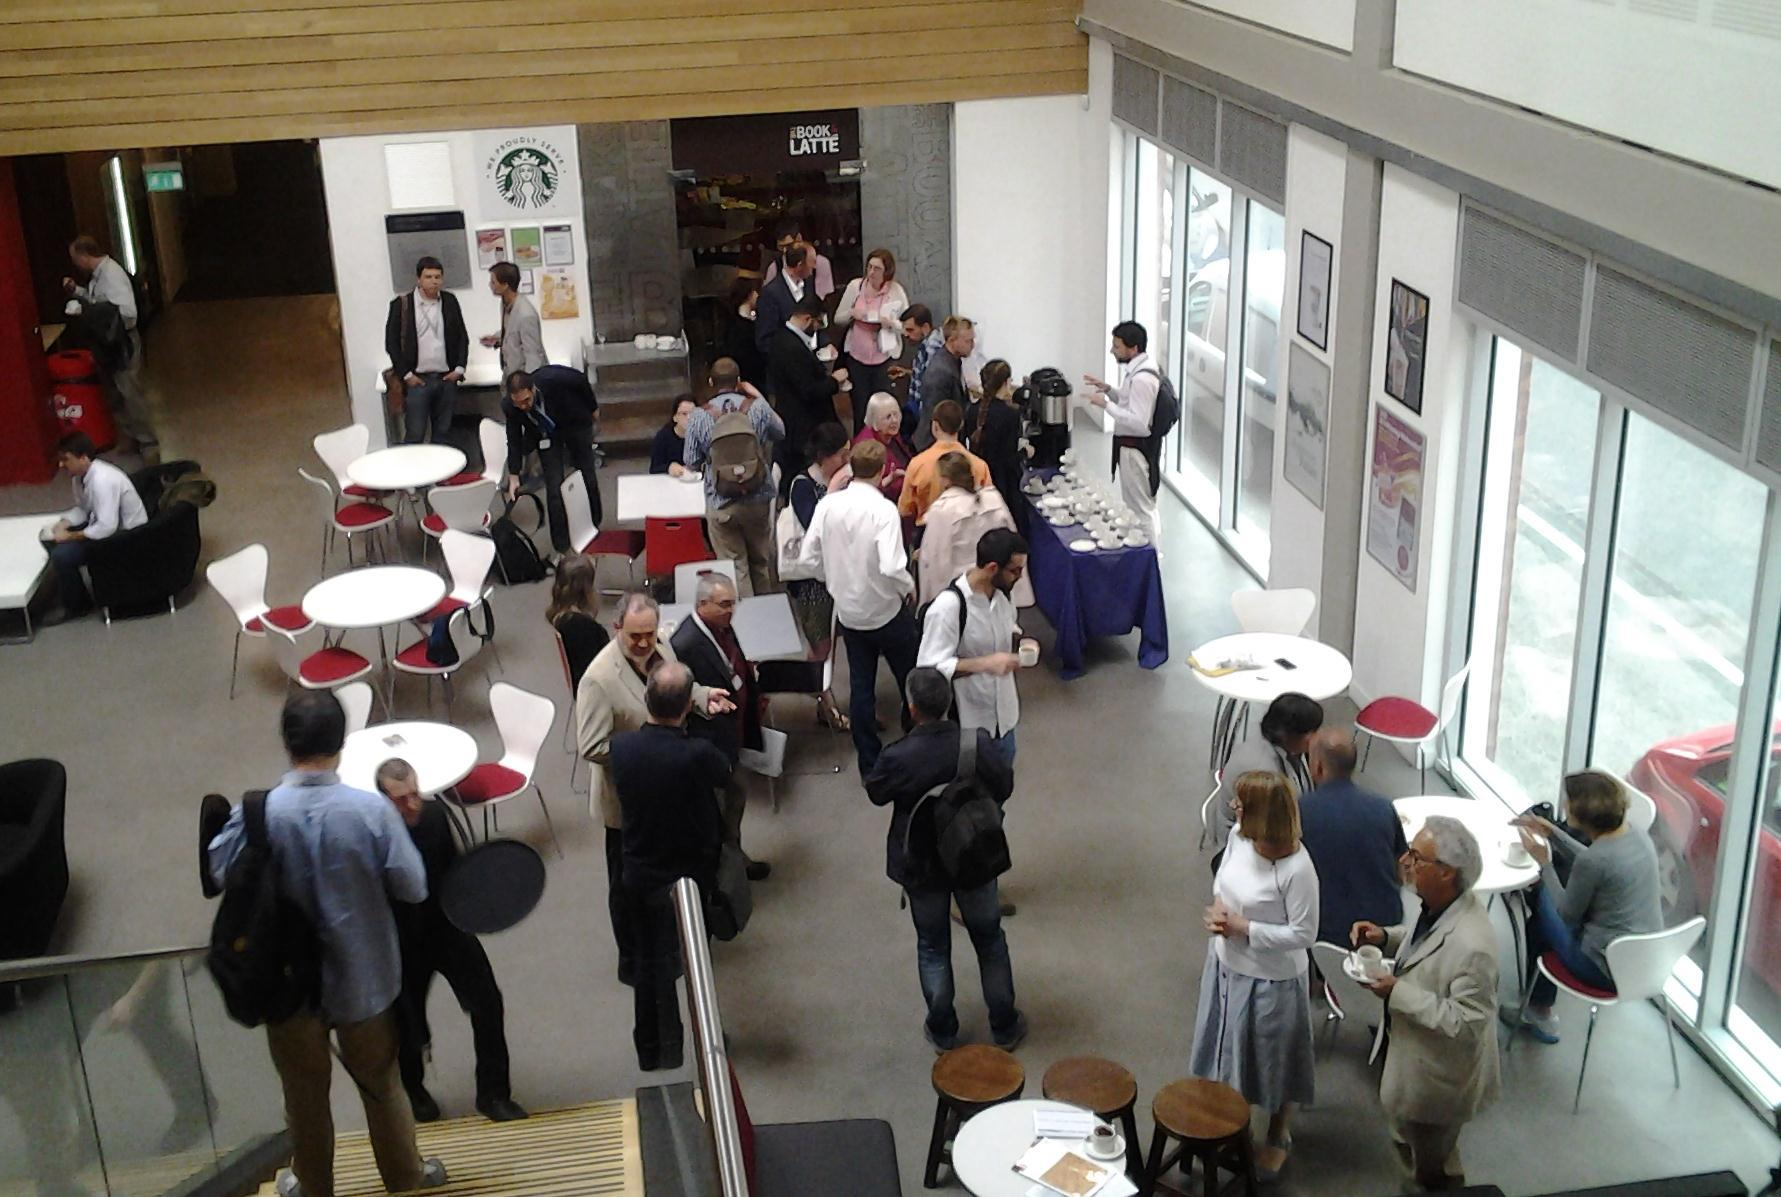 Coffee break - the most important part of any conference (Photo: SMS)